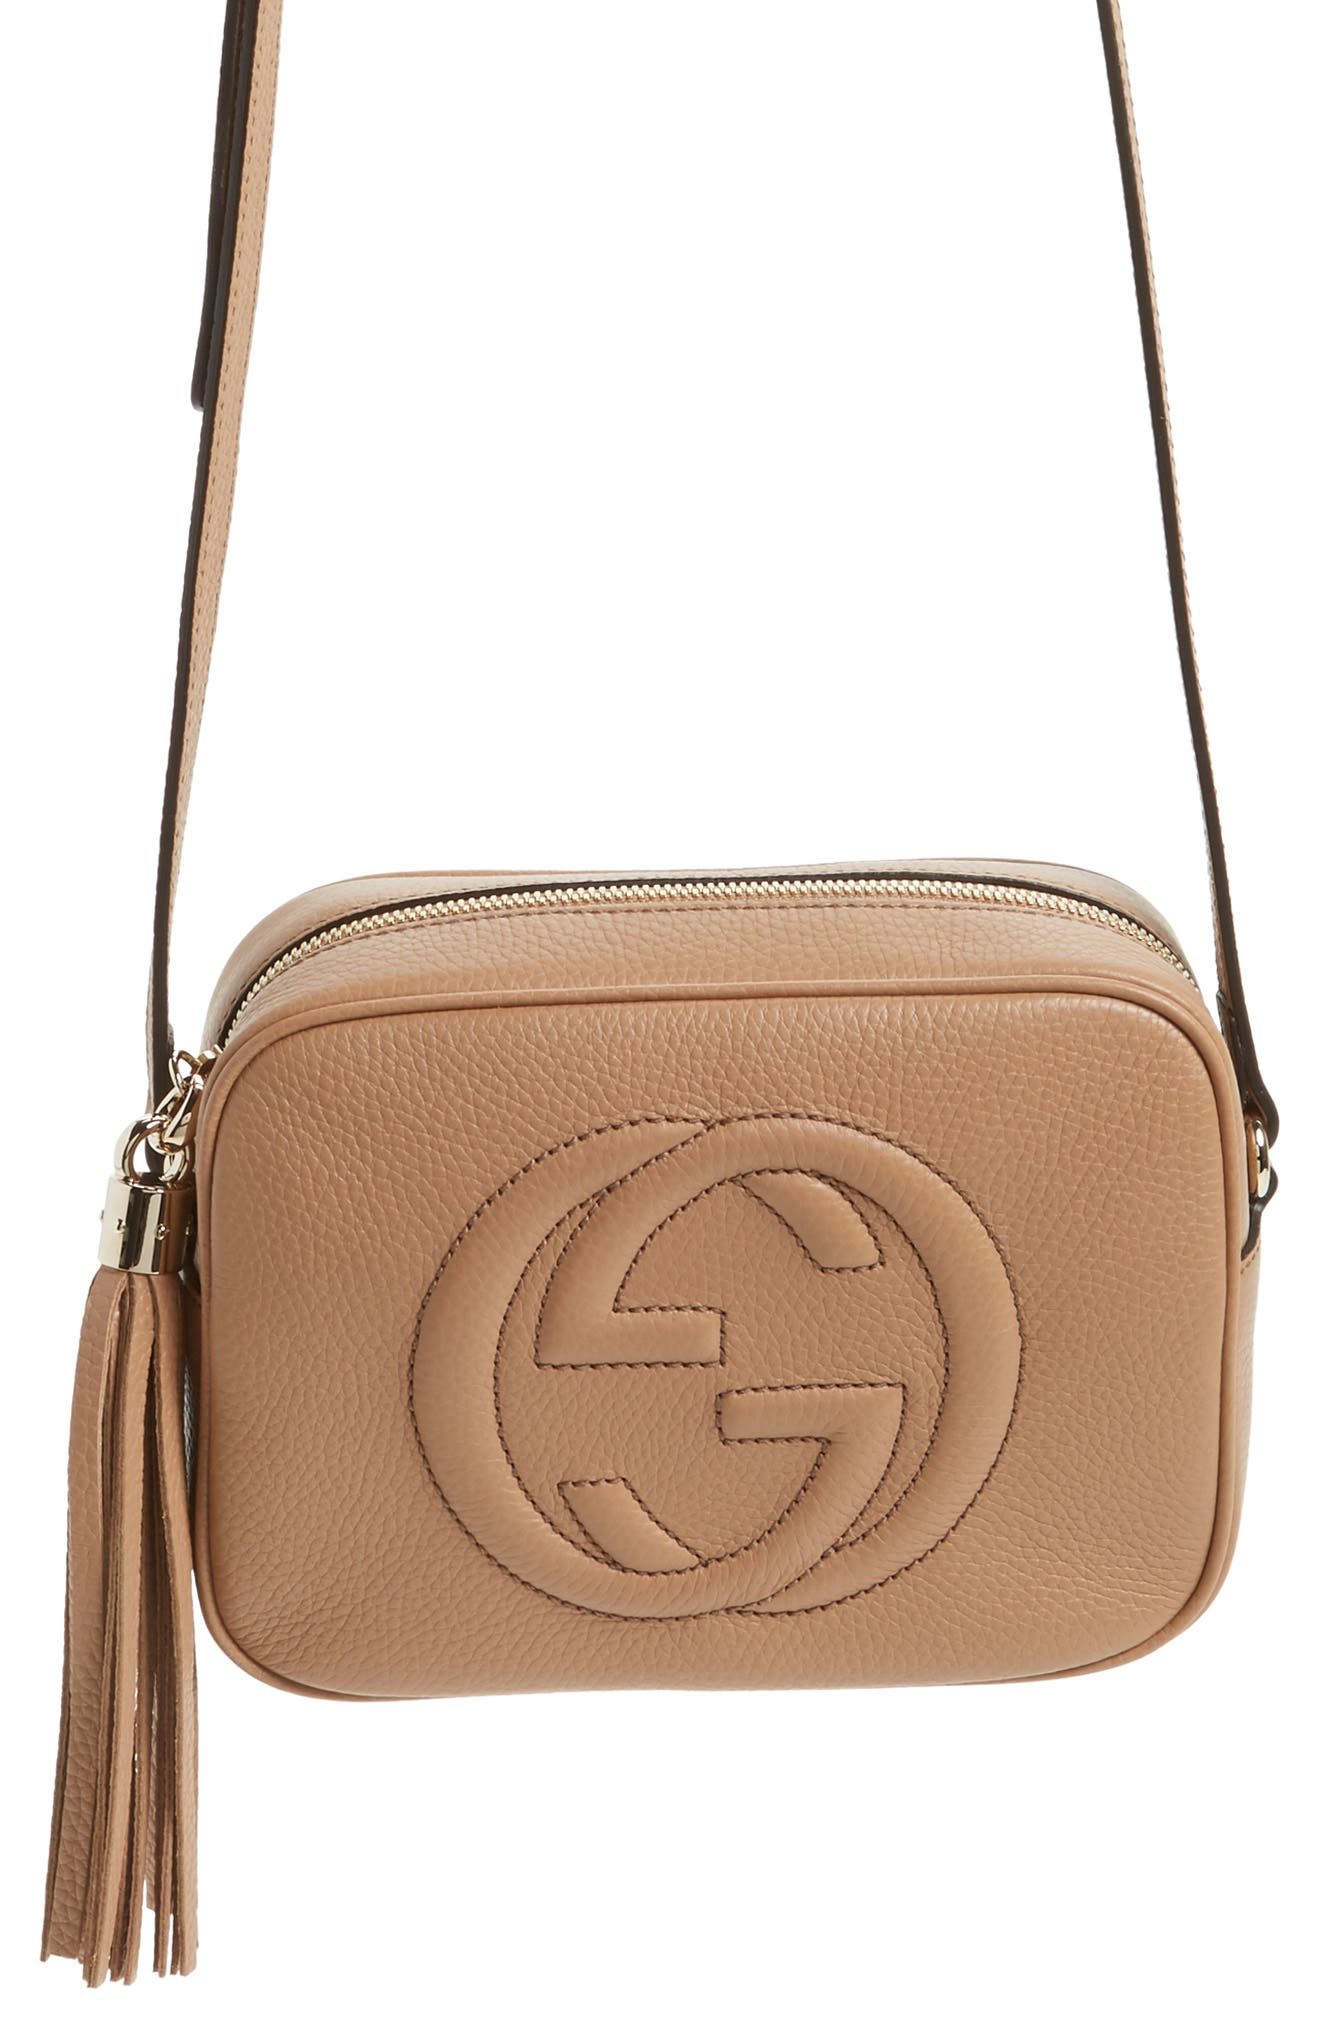 GUCCI,                             Soho Disco Leather Bag,                             Alternate thumbnail 7, color,                             2754 CAMELIA